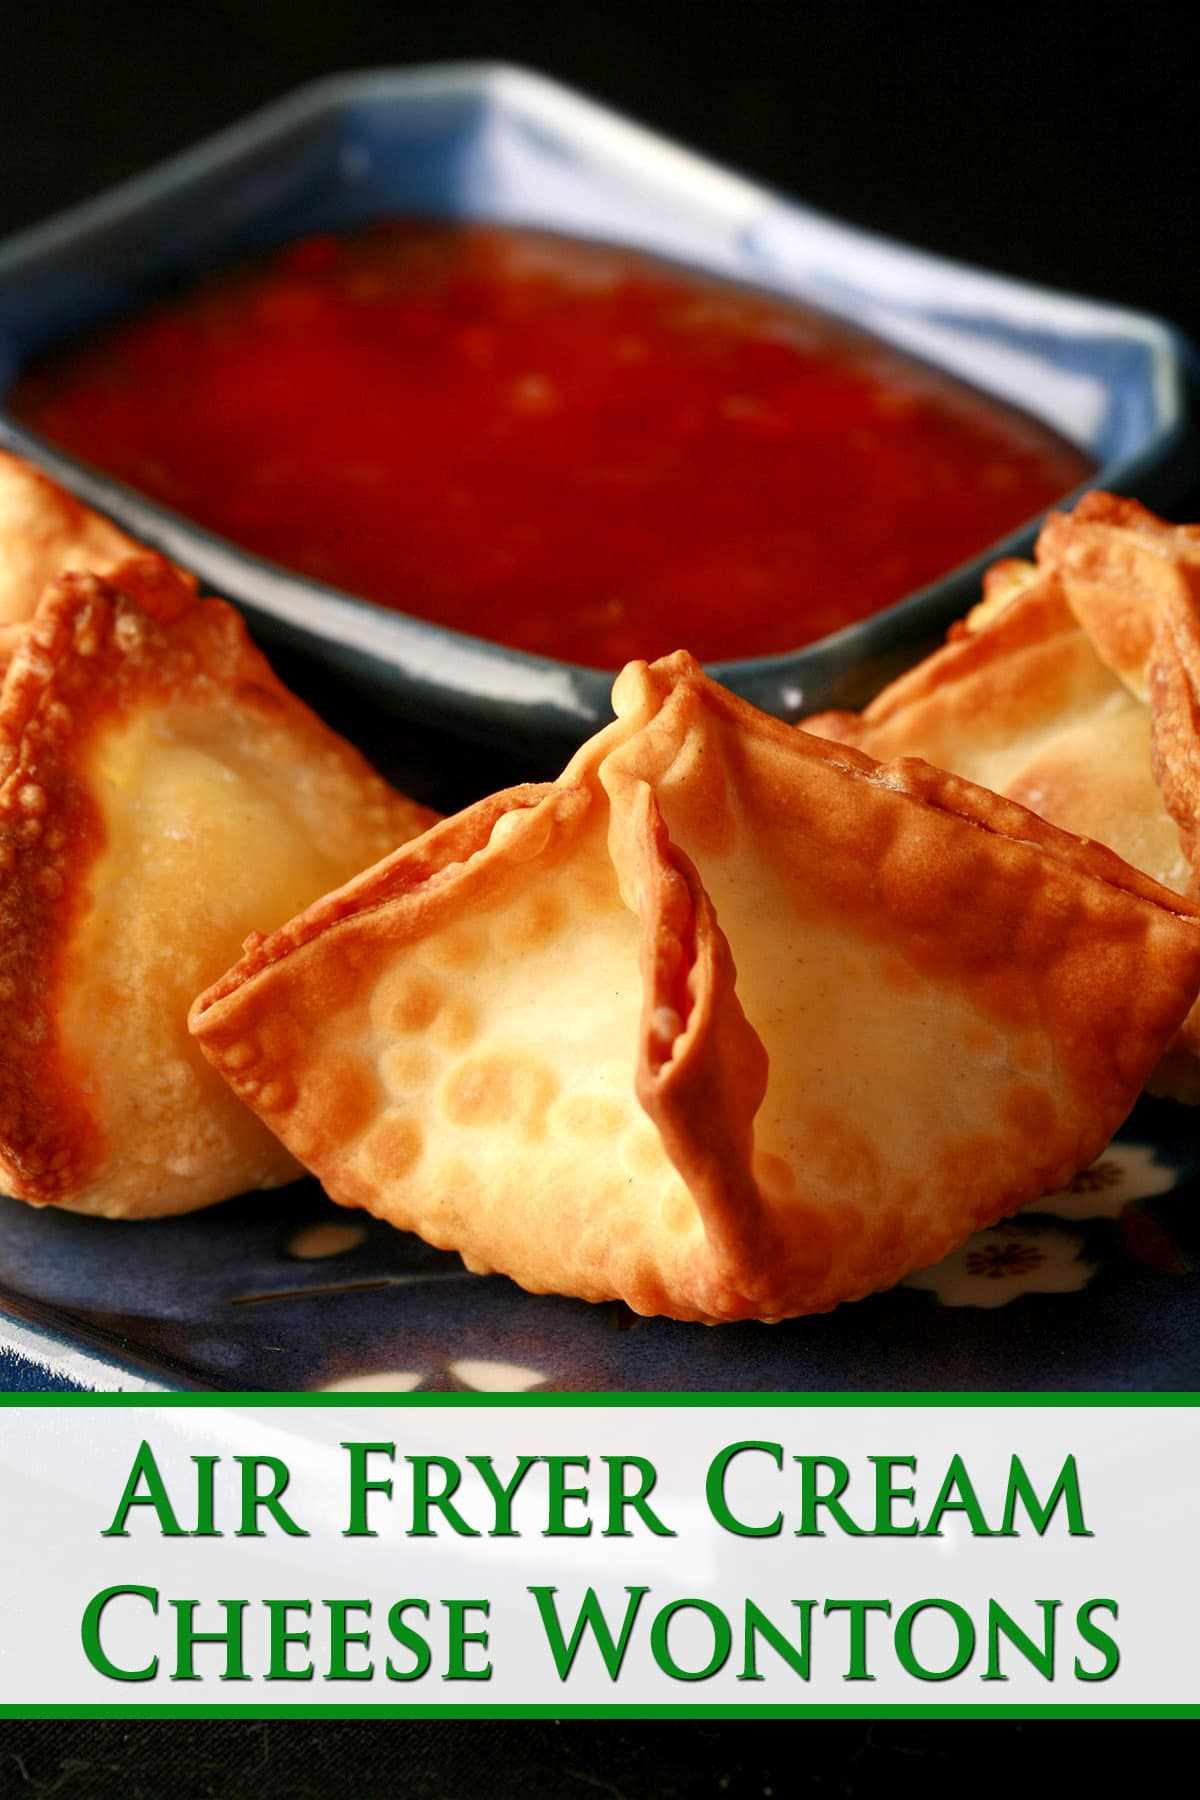 A small, blue, rectangular dish with pyramid shaped air fryer cream cheese wontons on it.